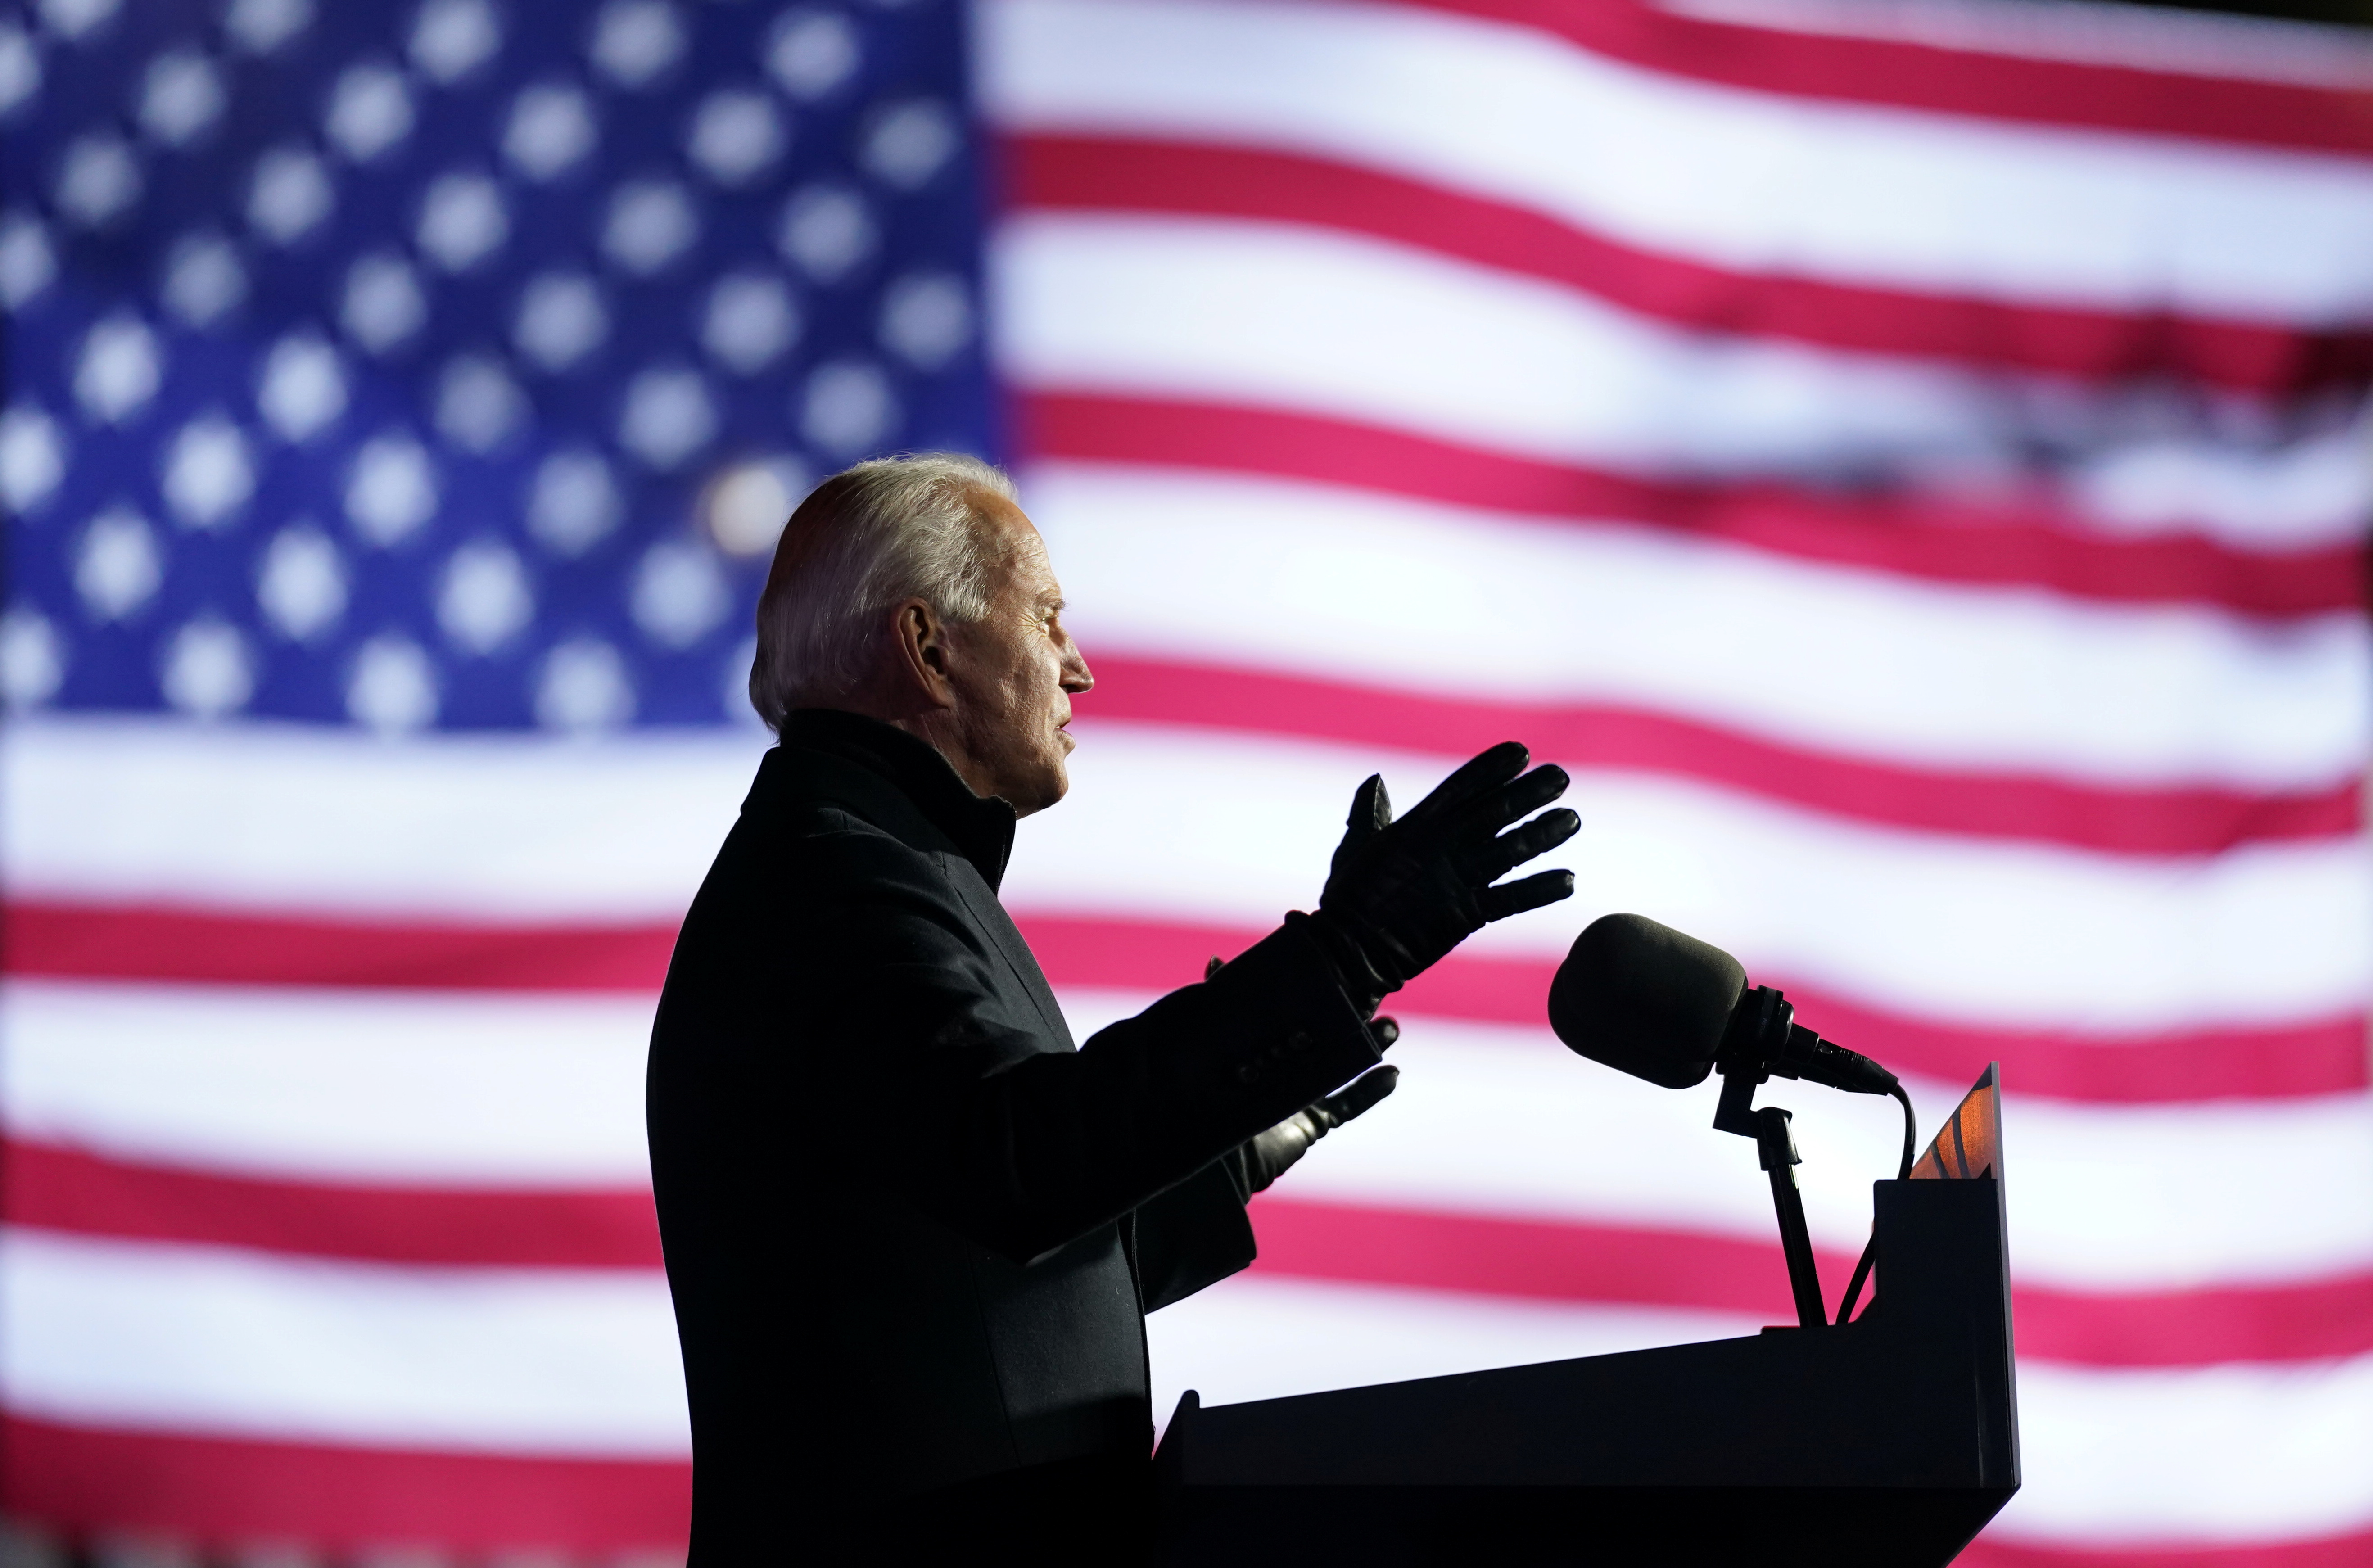 Biden 'just as confrontational as Trump' claims China state media